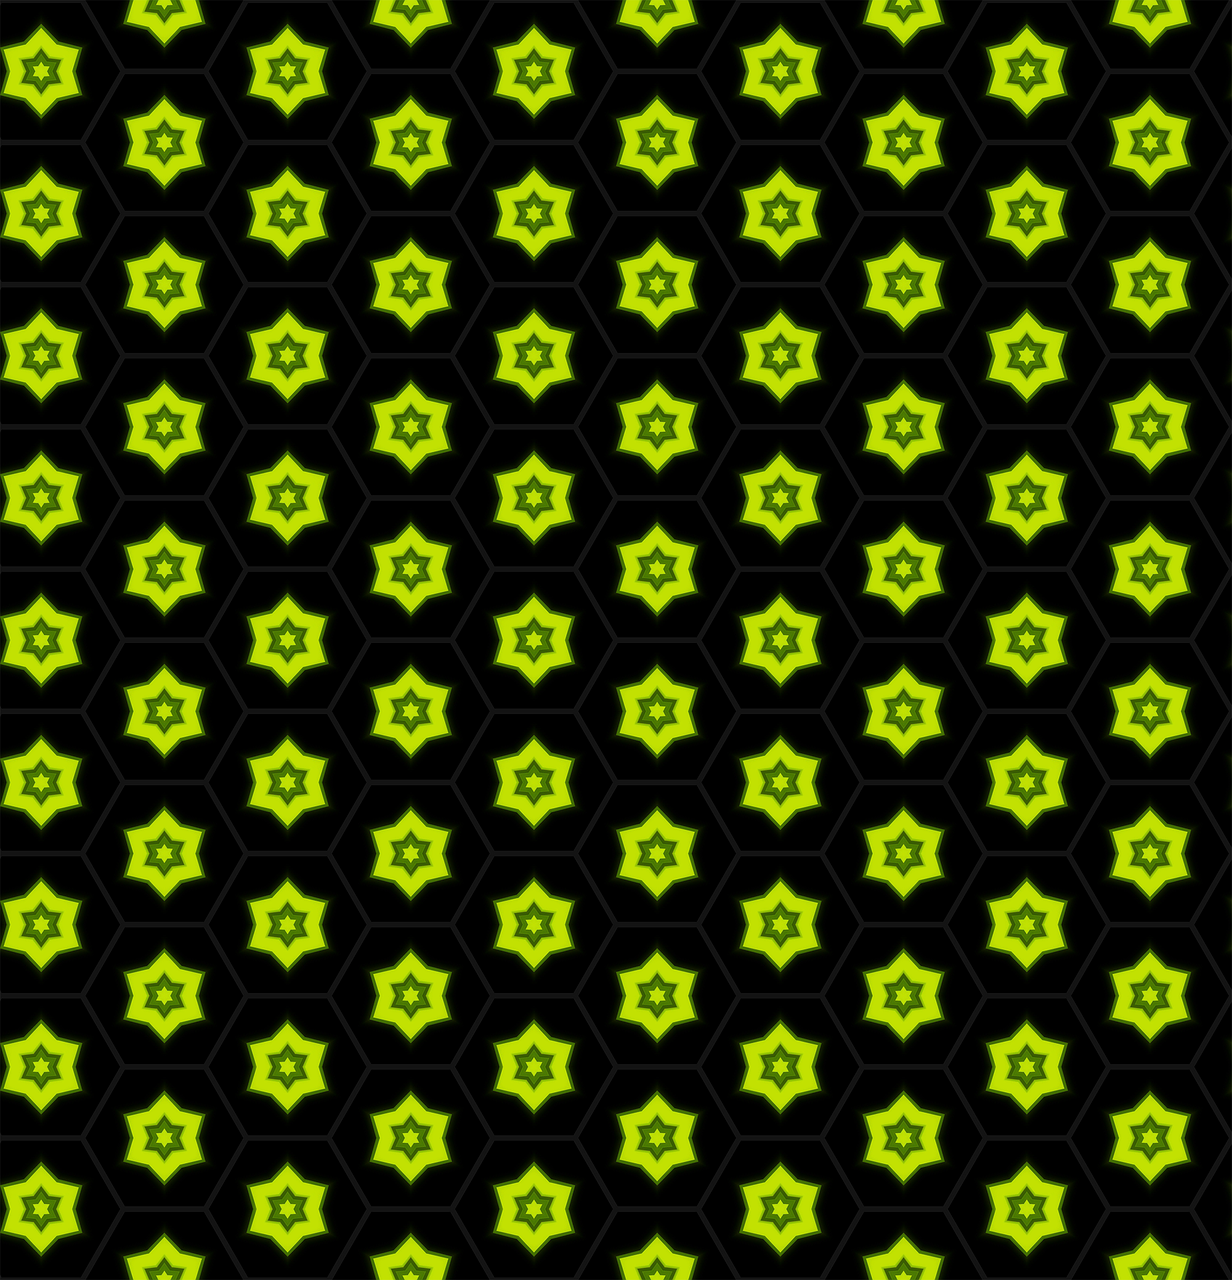 pattern,hexagons,green,black,design,seamless,texture,seamless texture,geometric,background,seamless backgrounds,textures,patterns,green texture,textured background,textured backgrounds,free pictures, free photos, free images, royalty free, free illustrations